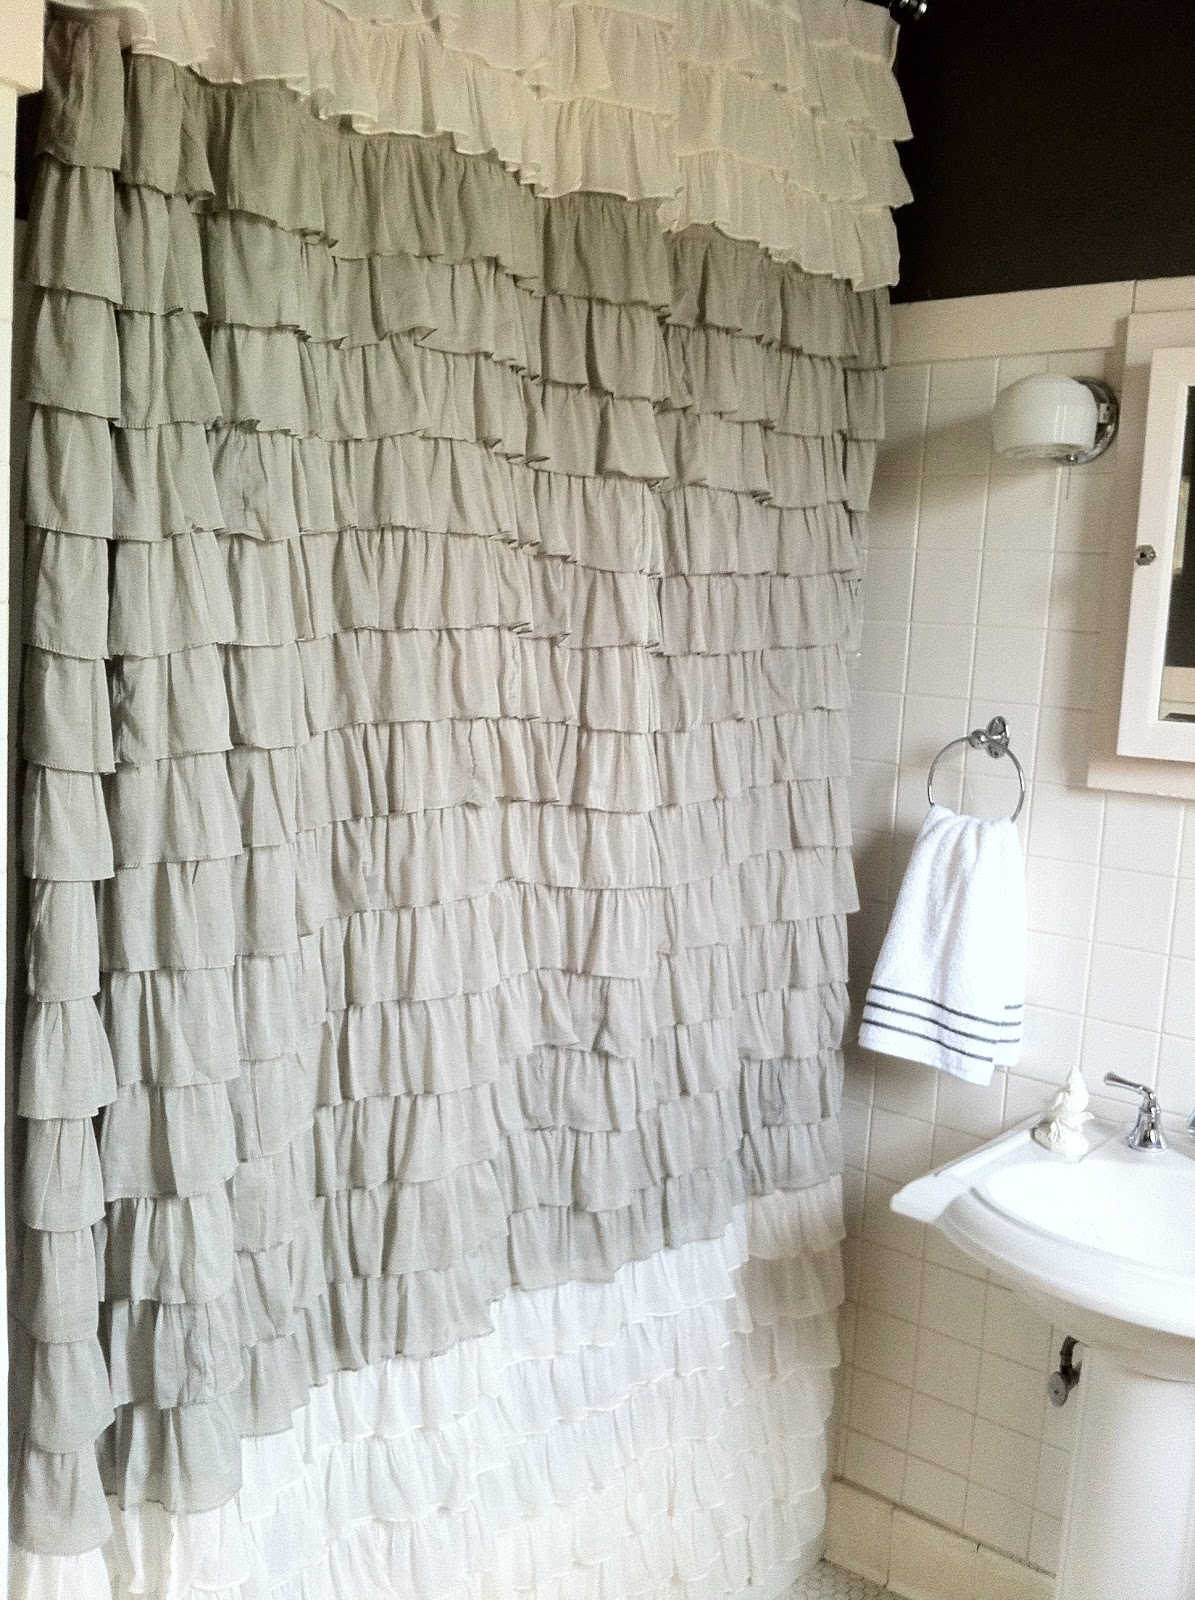 Ruffle shower curtain - Ruffle Shower Curtain Revised